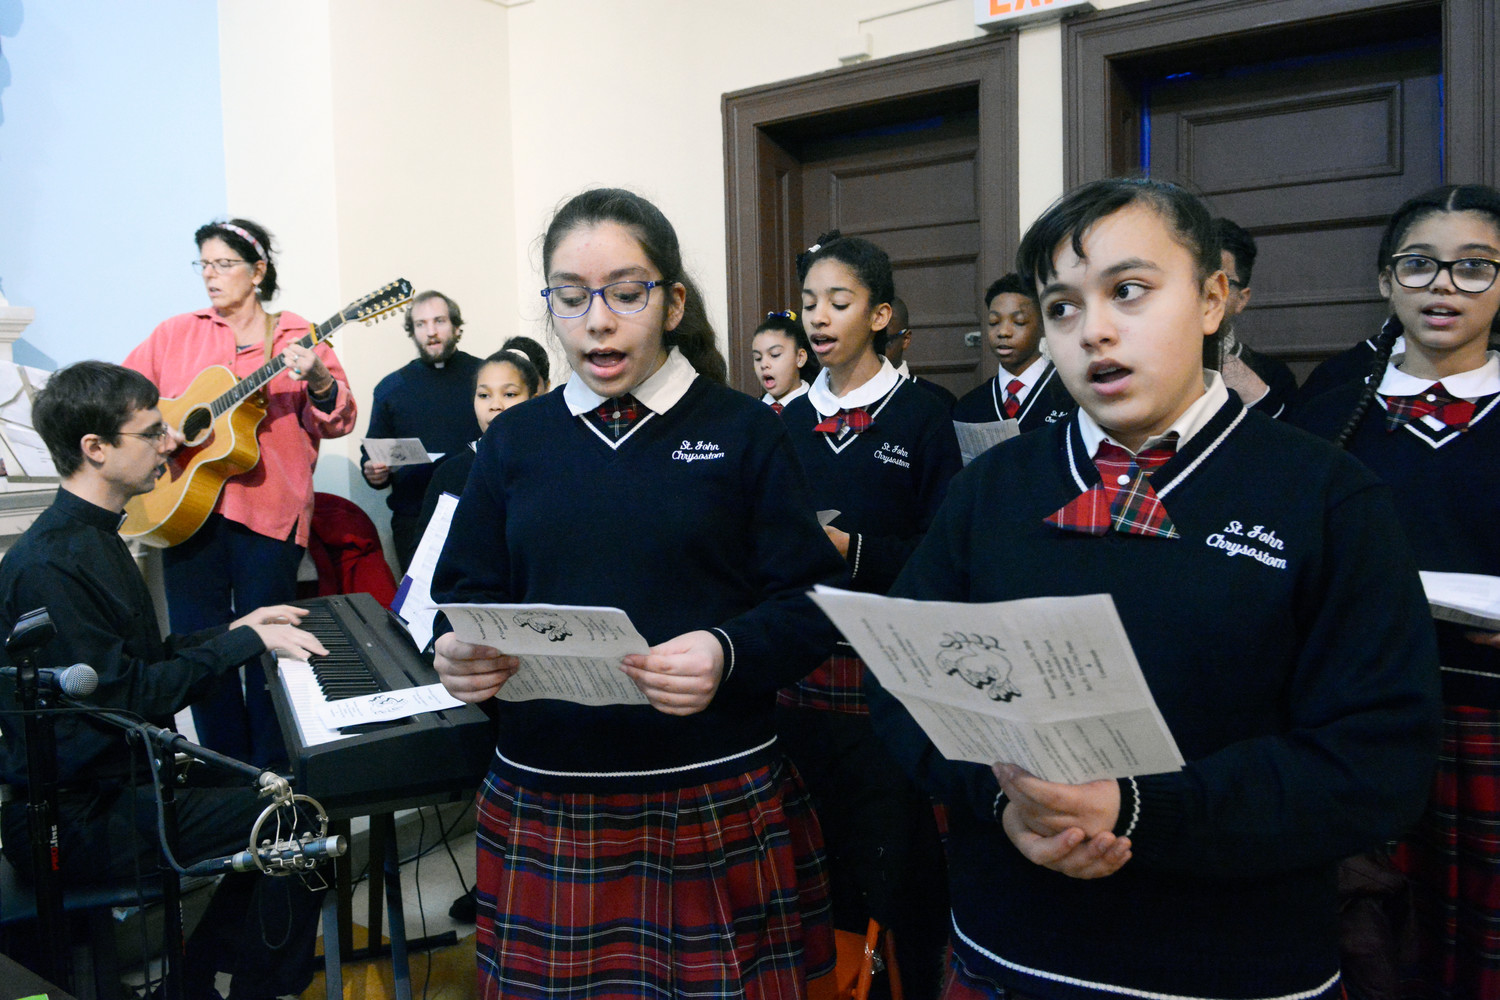 sixth-grader Lexyne Rivera, left, and seventh-grader Melania Rodriguez sing with the St. John Chrysostom School choir at Mass.